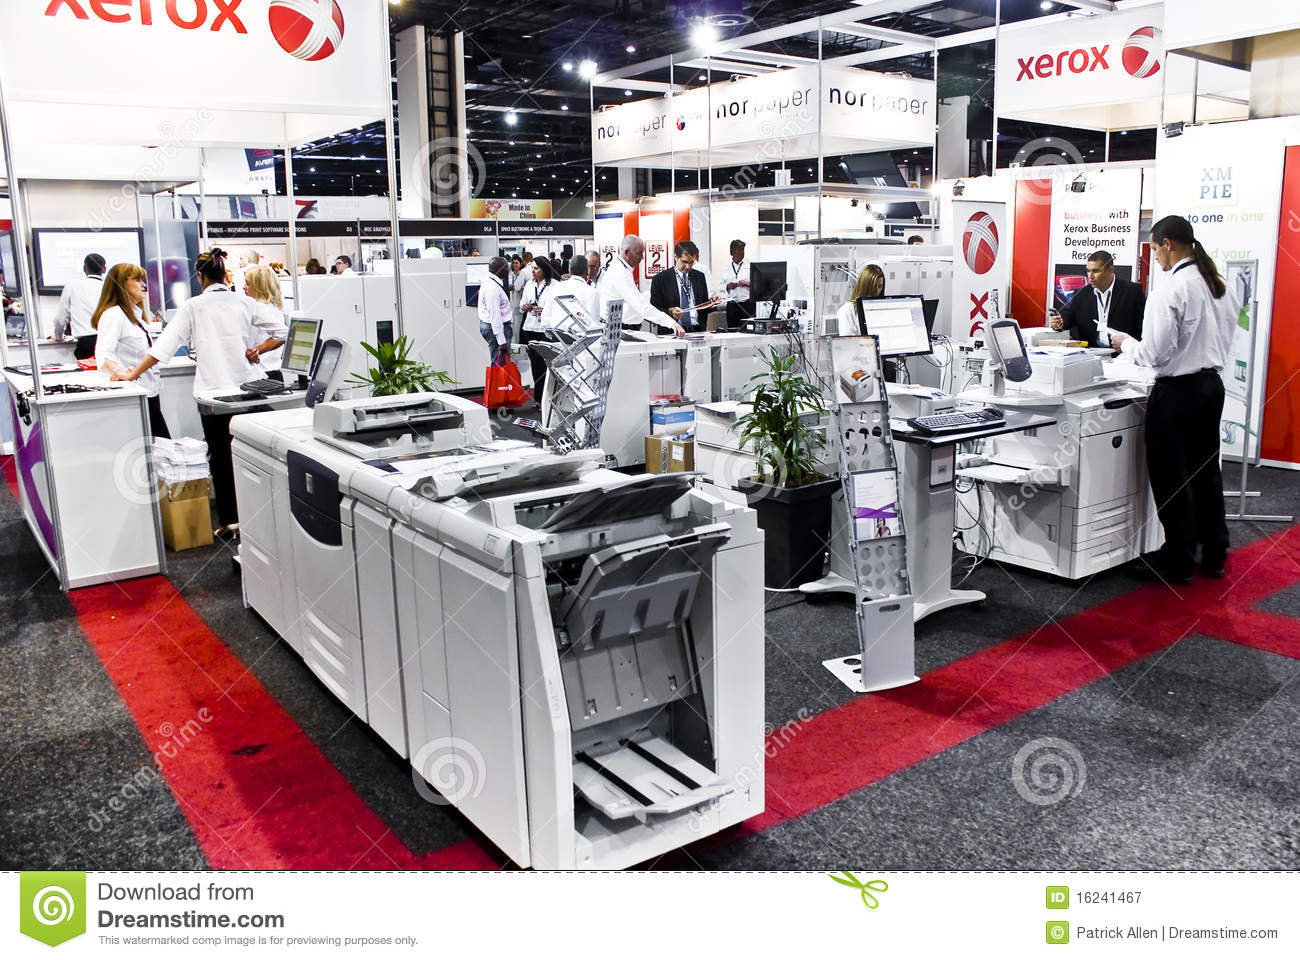 Xerox color laser printers - Xerox Colour Laser Printers Sign Africa Royalty Free Stock Photography